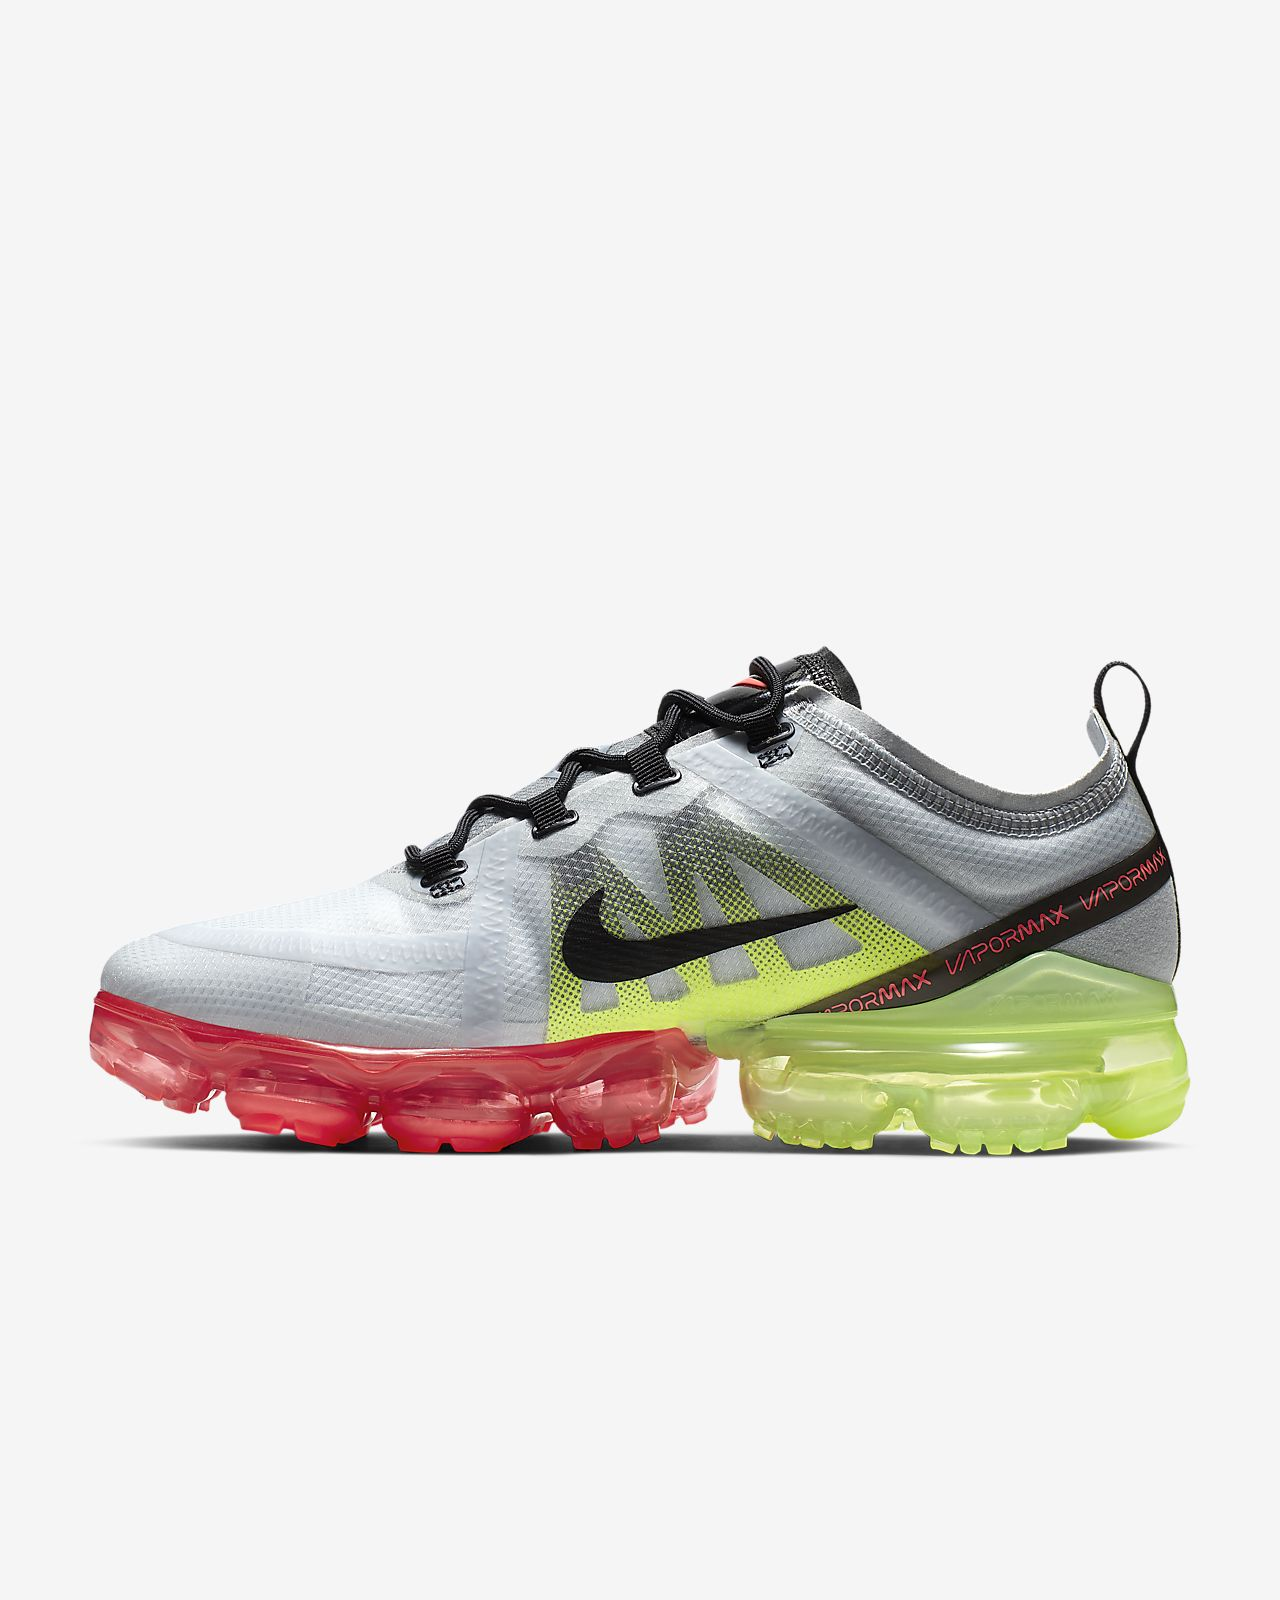 outlet store 7c91b df5f4 ... Chaussure Nike Air VaporMax 2019